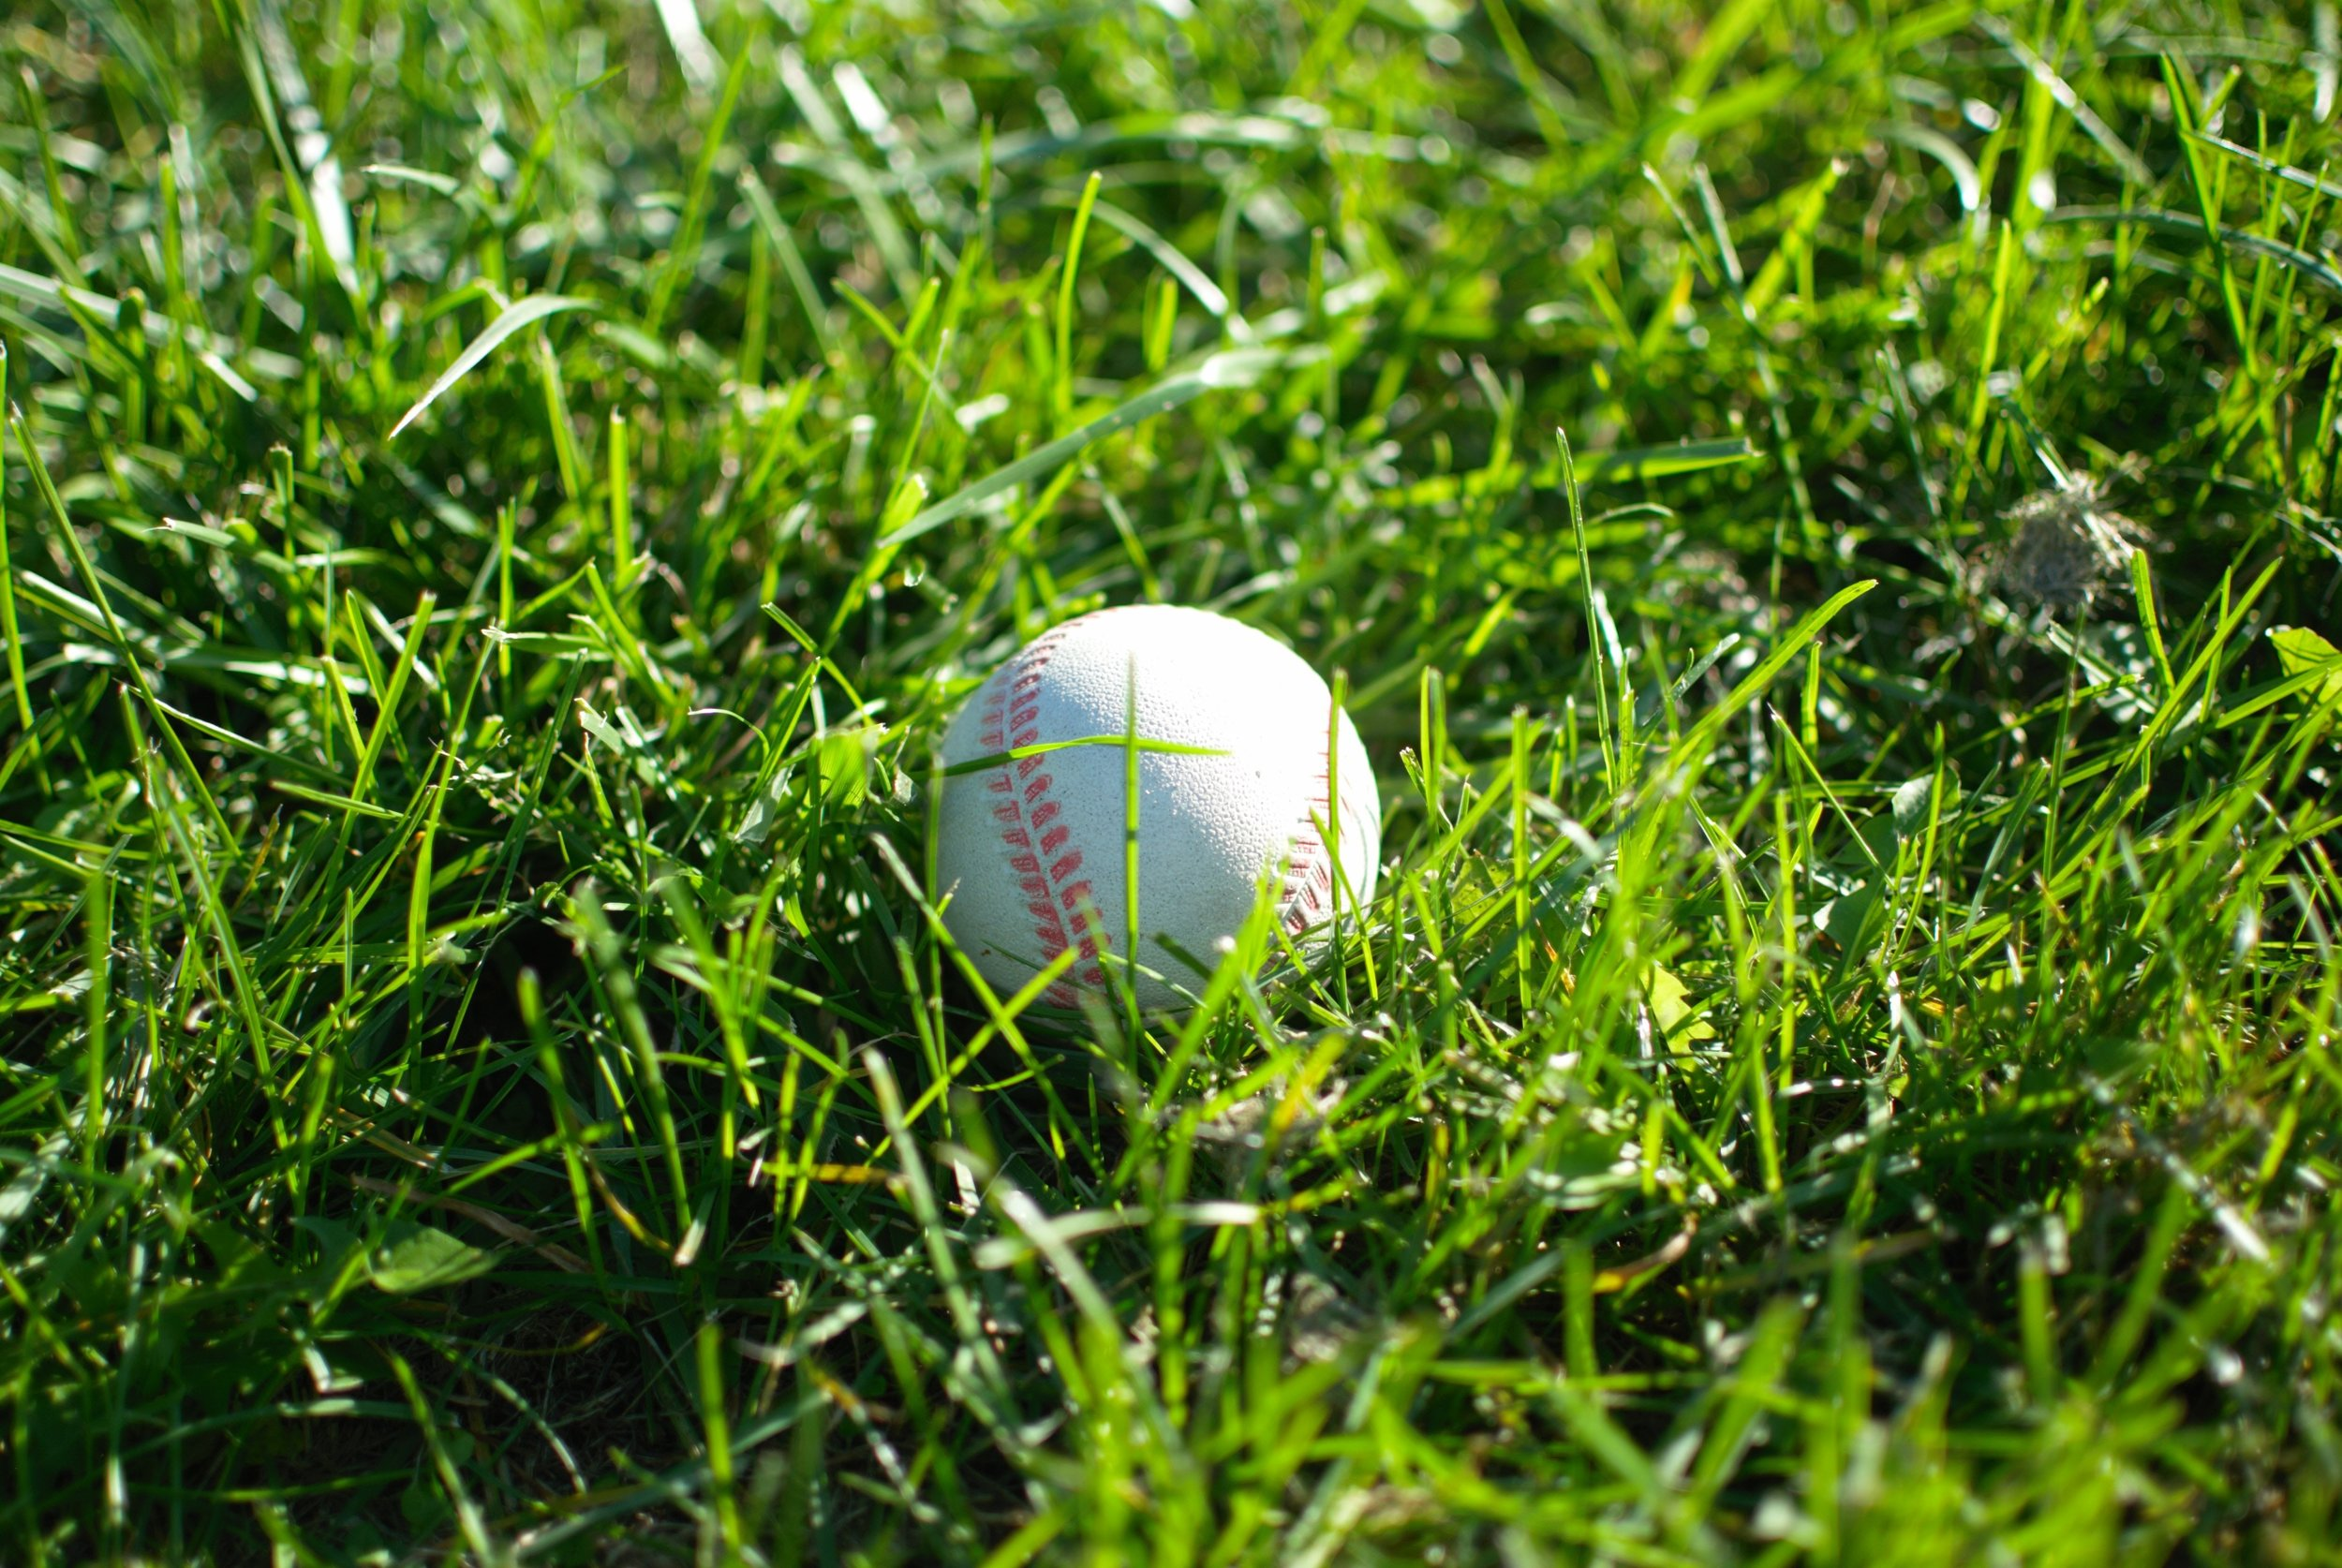 Can We Moneyball Scripture Engagement? - (Blog)